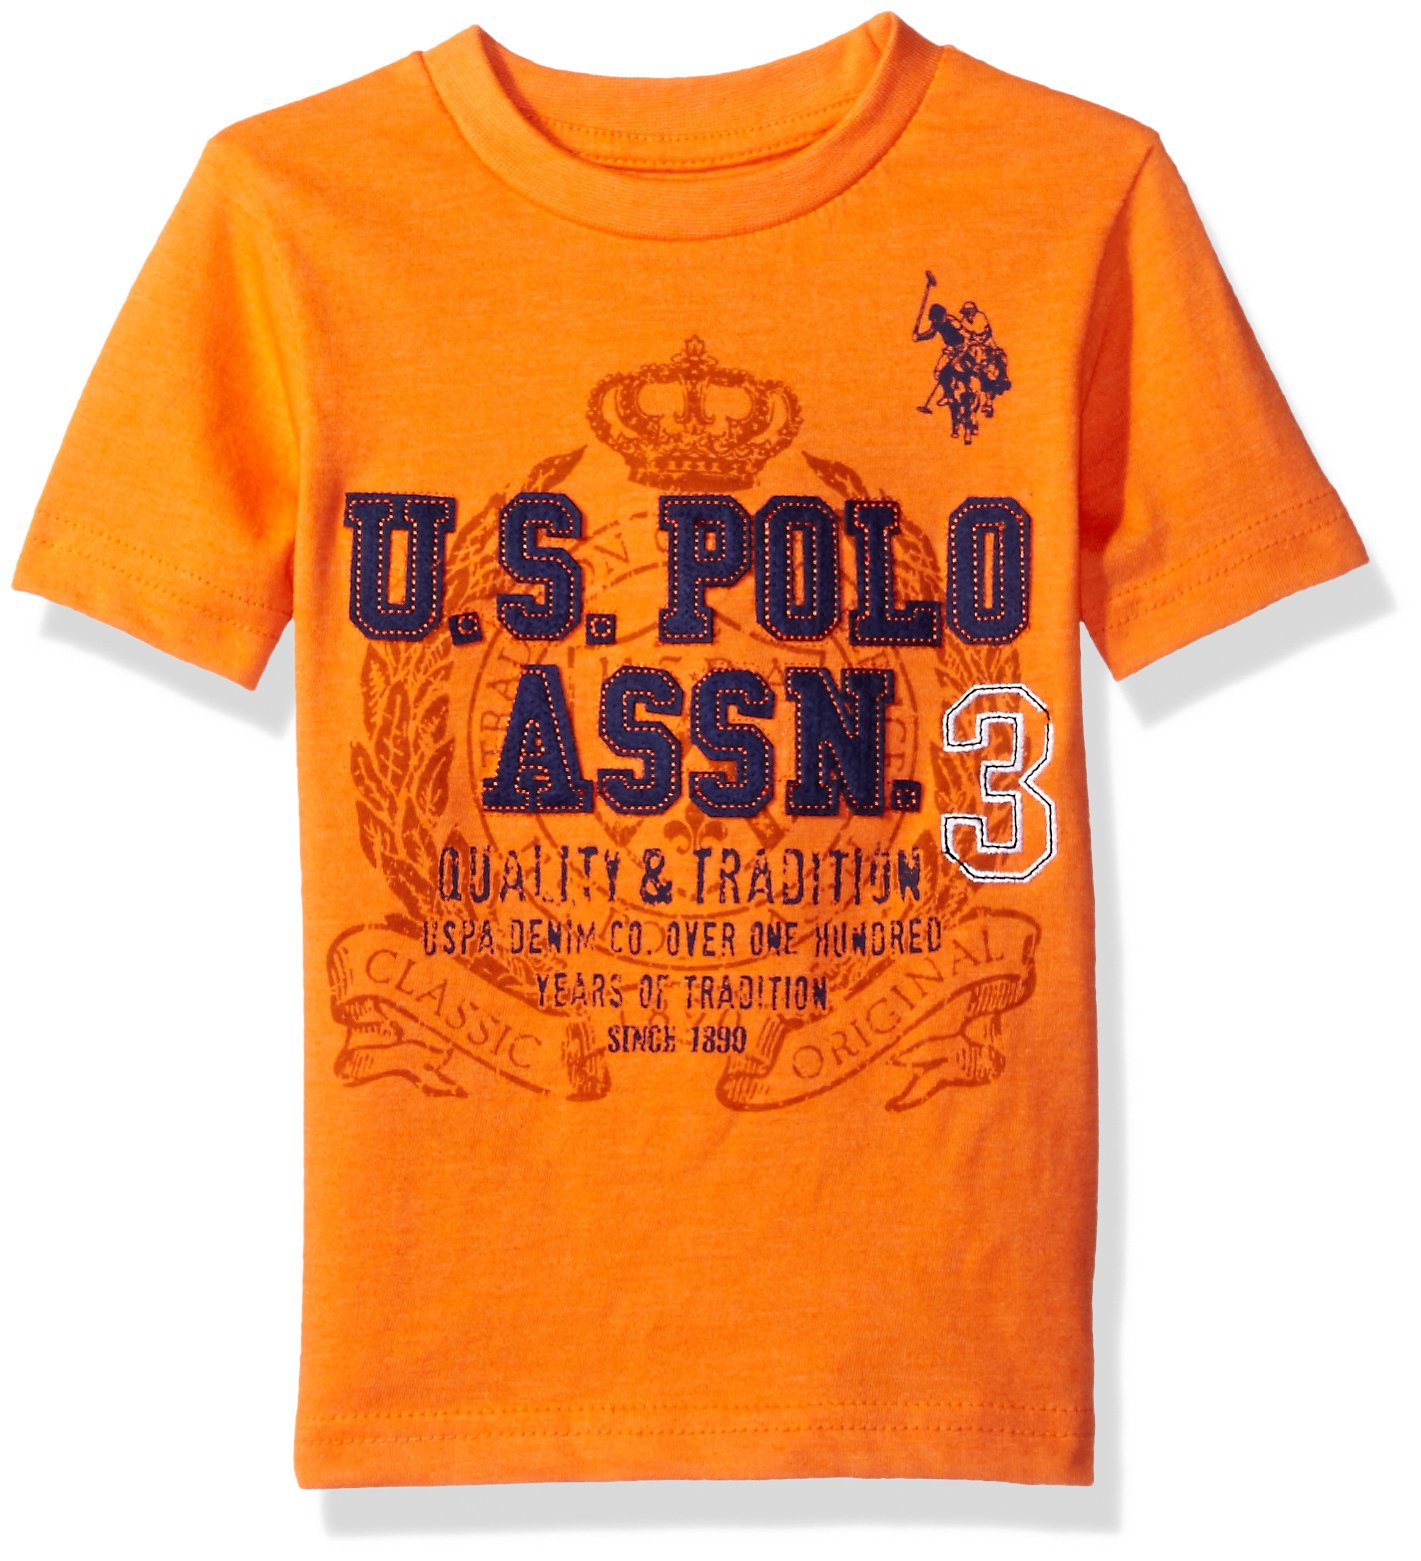 U.S. Polo Assn. Boys' Crew Neck Iconic Graphic Logo T-Shirt,Orange Heather H4GS010OEV1,2T by U.S. Polo Assn. (Image #1)